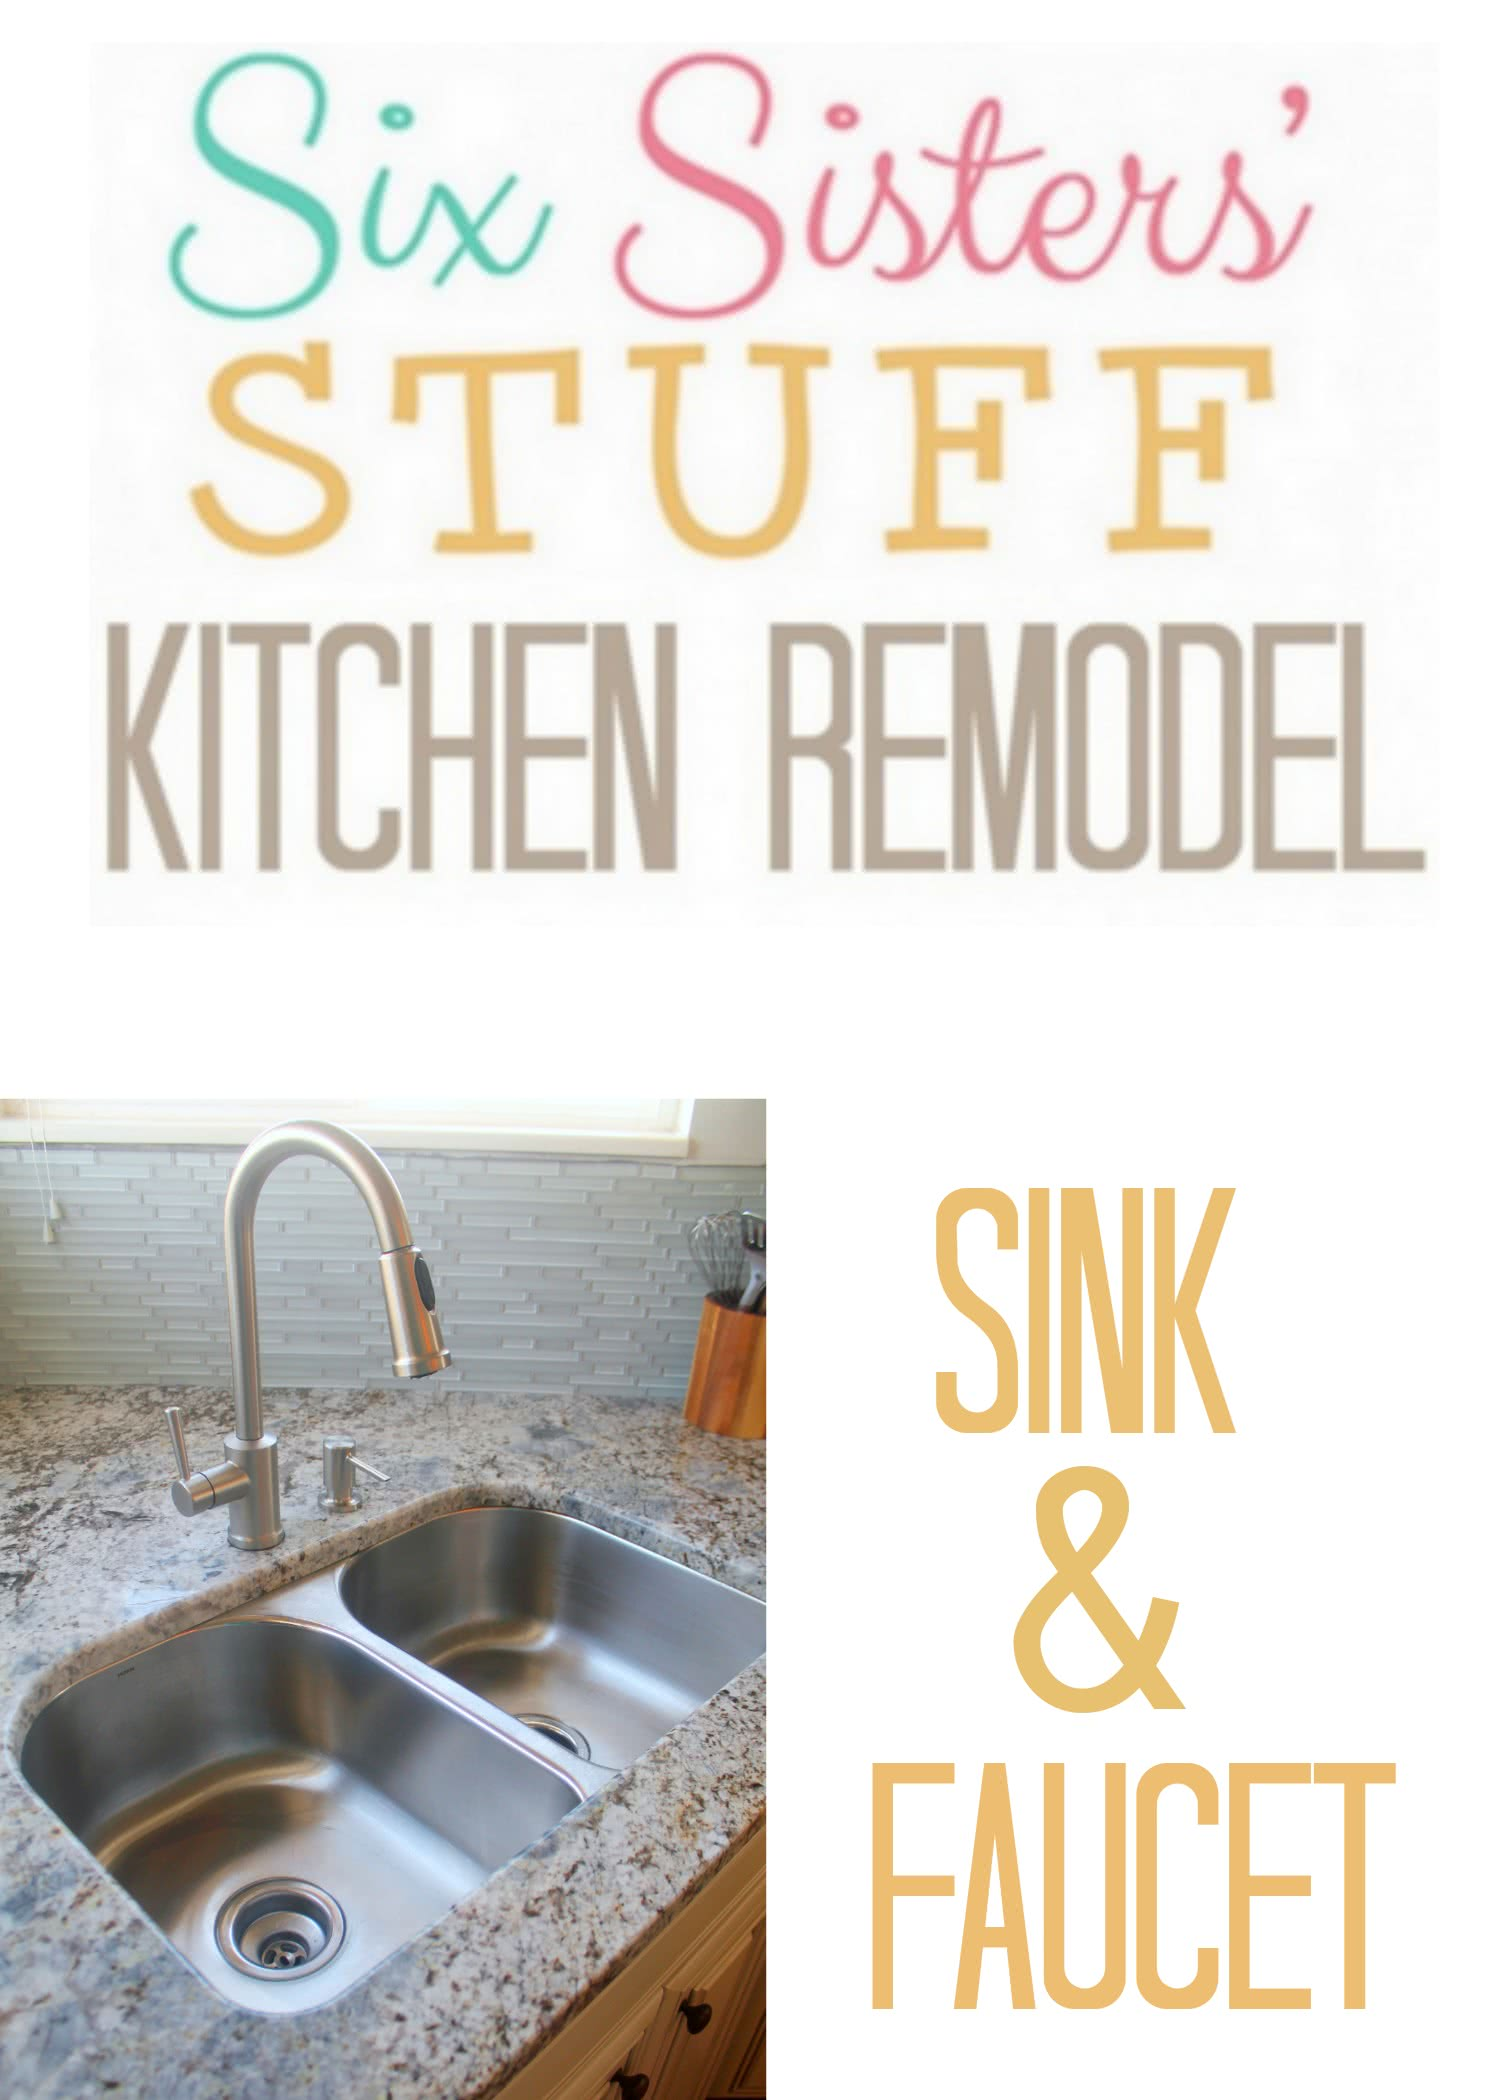 Six Sisters' Stuff Kitchen Remodel: Sink and Faucet